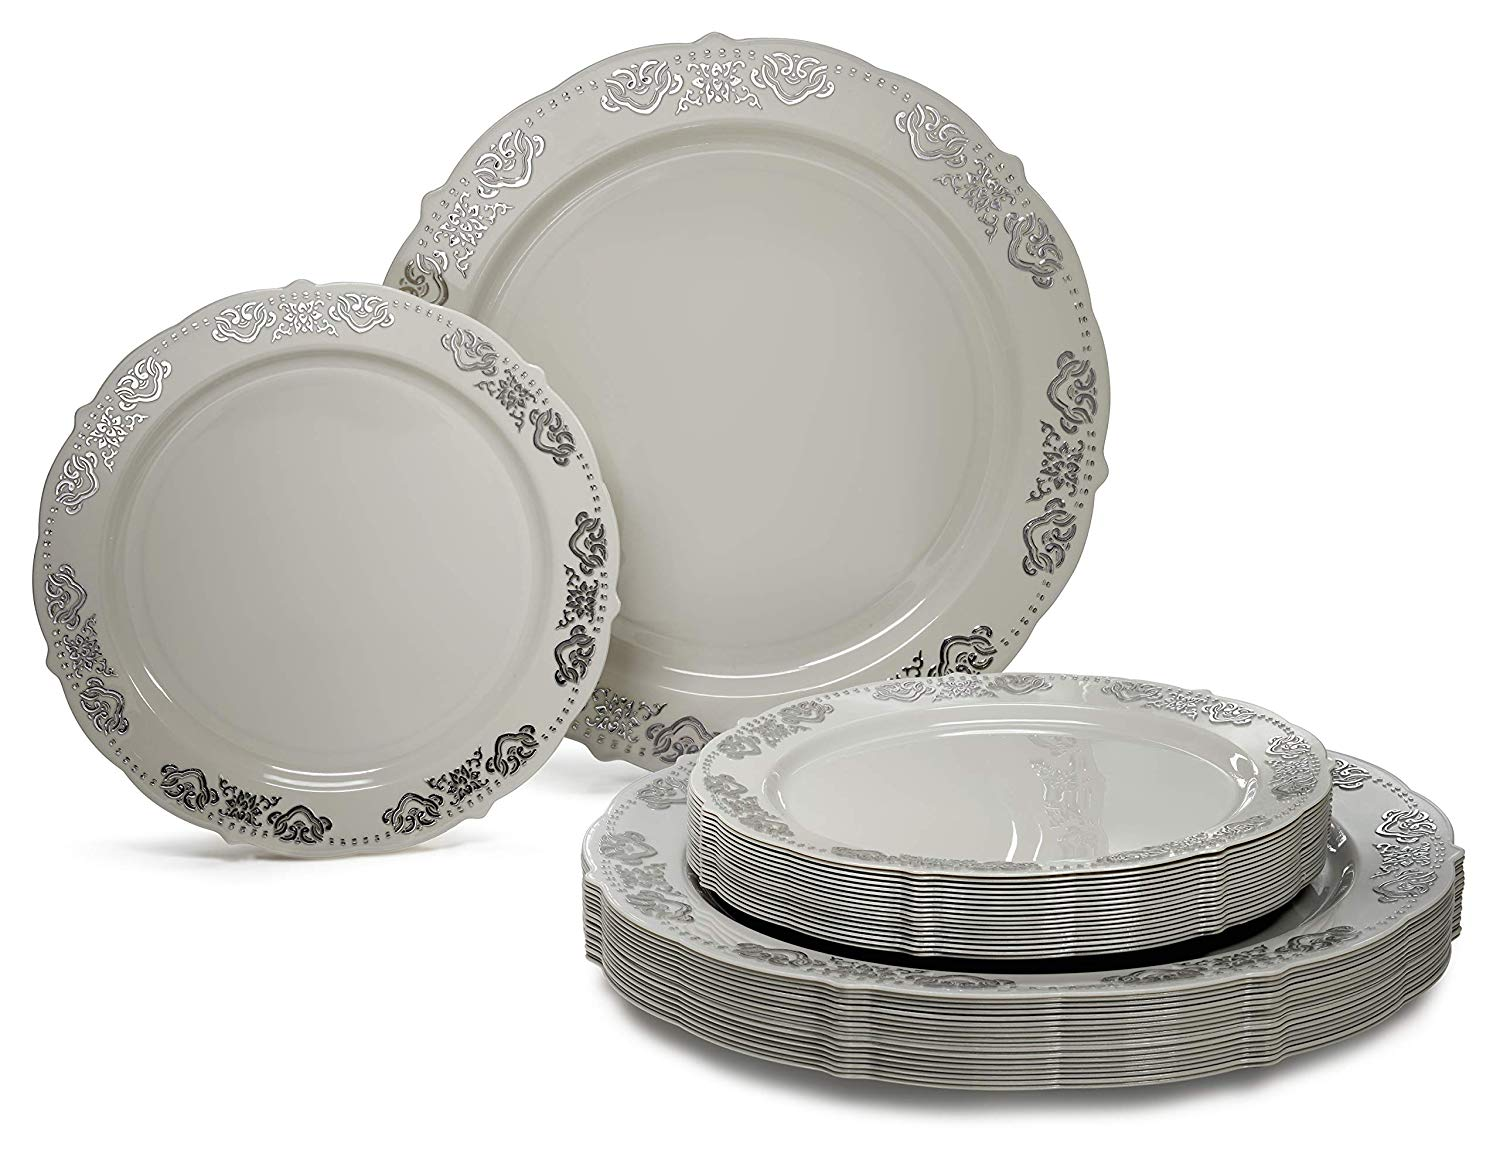 Occasions 720 Pcs / 120 Guest Wedding Disposable Plastic Plate And Silverware Combo Set (white/silver)